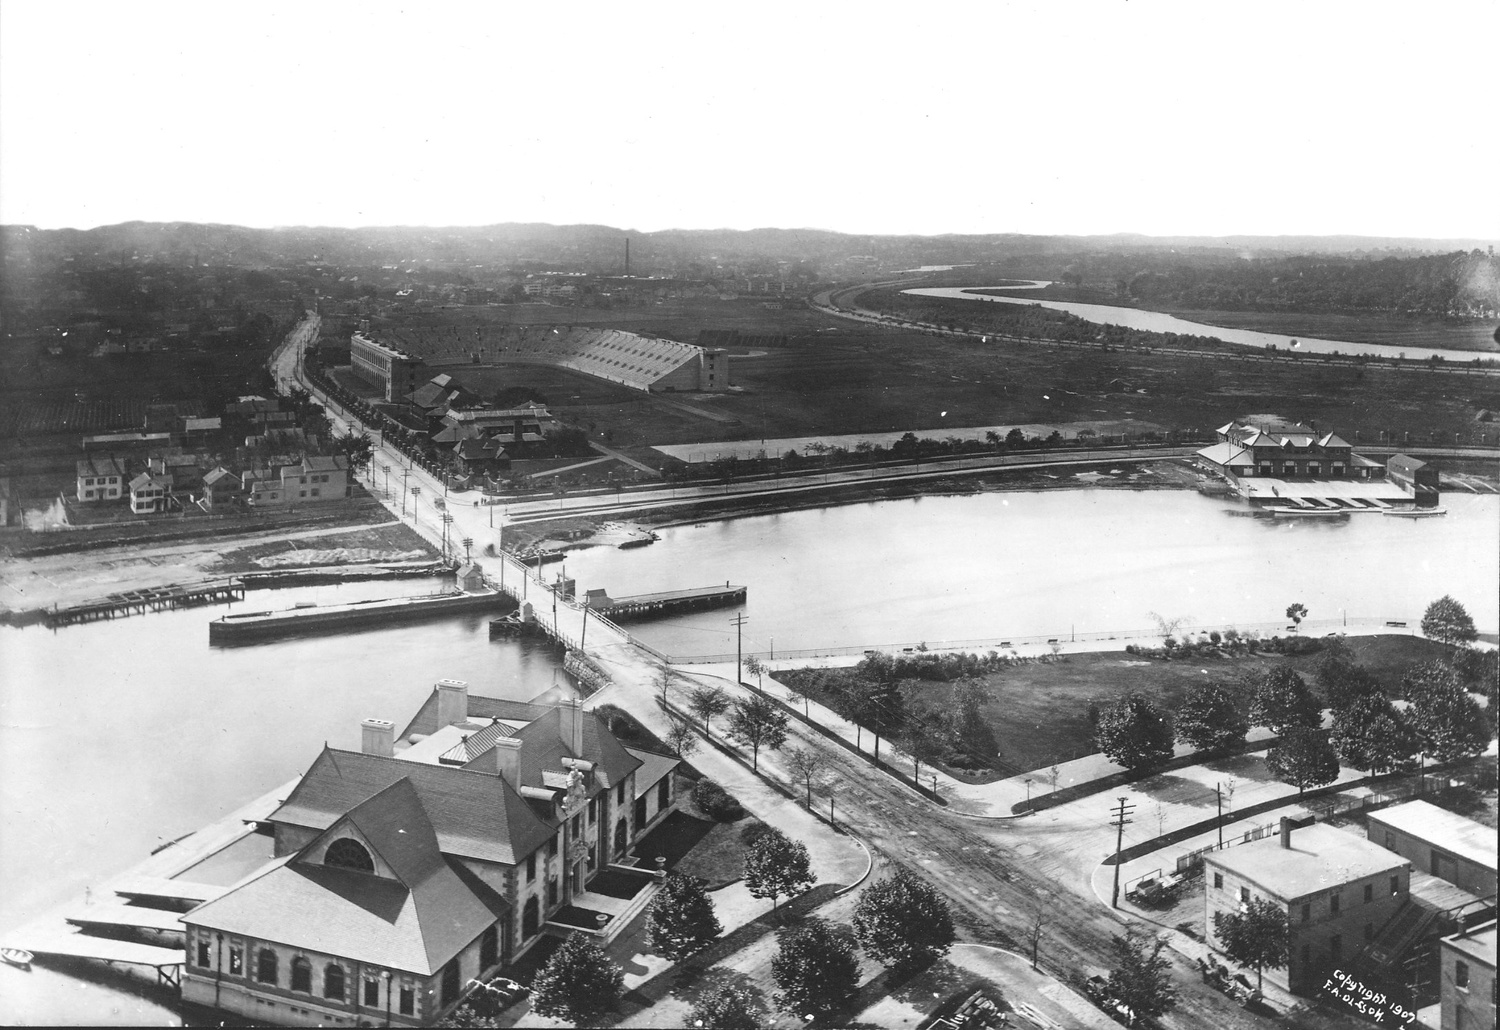 In 1907, Harvard's new stadium shown here across the river was three years old